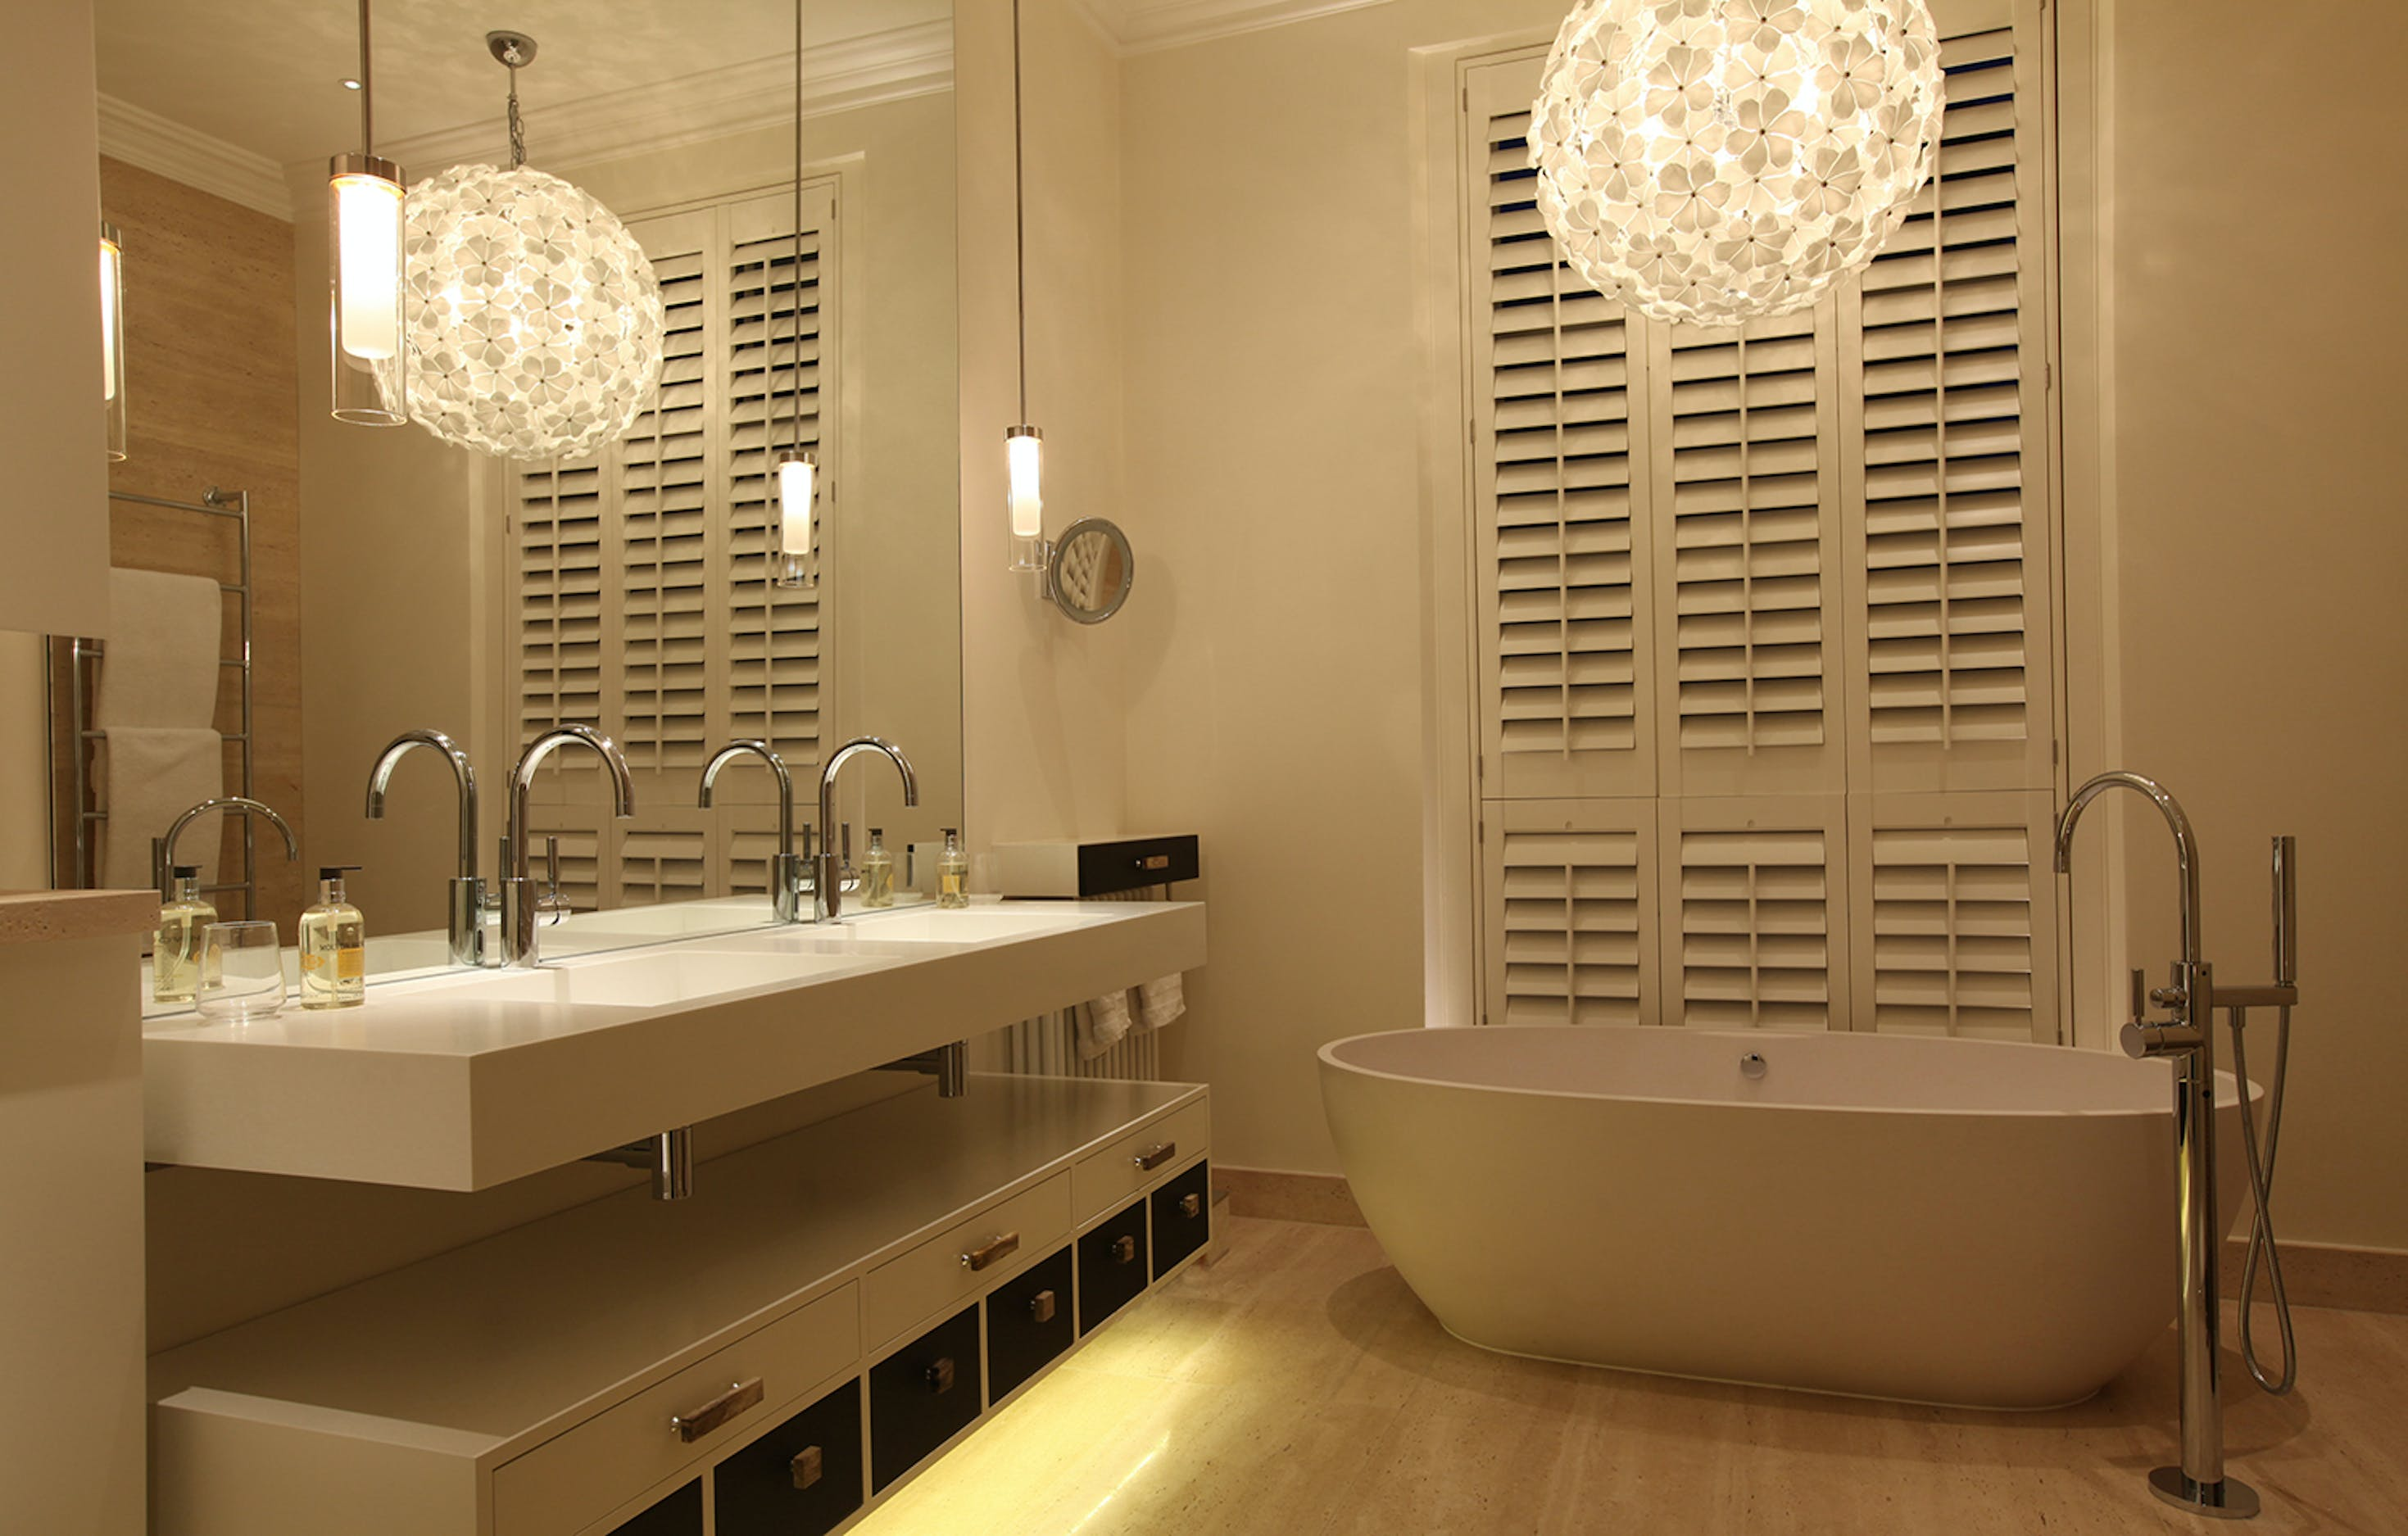 contemporary bathroom lighting with decorative pendant